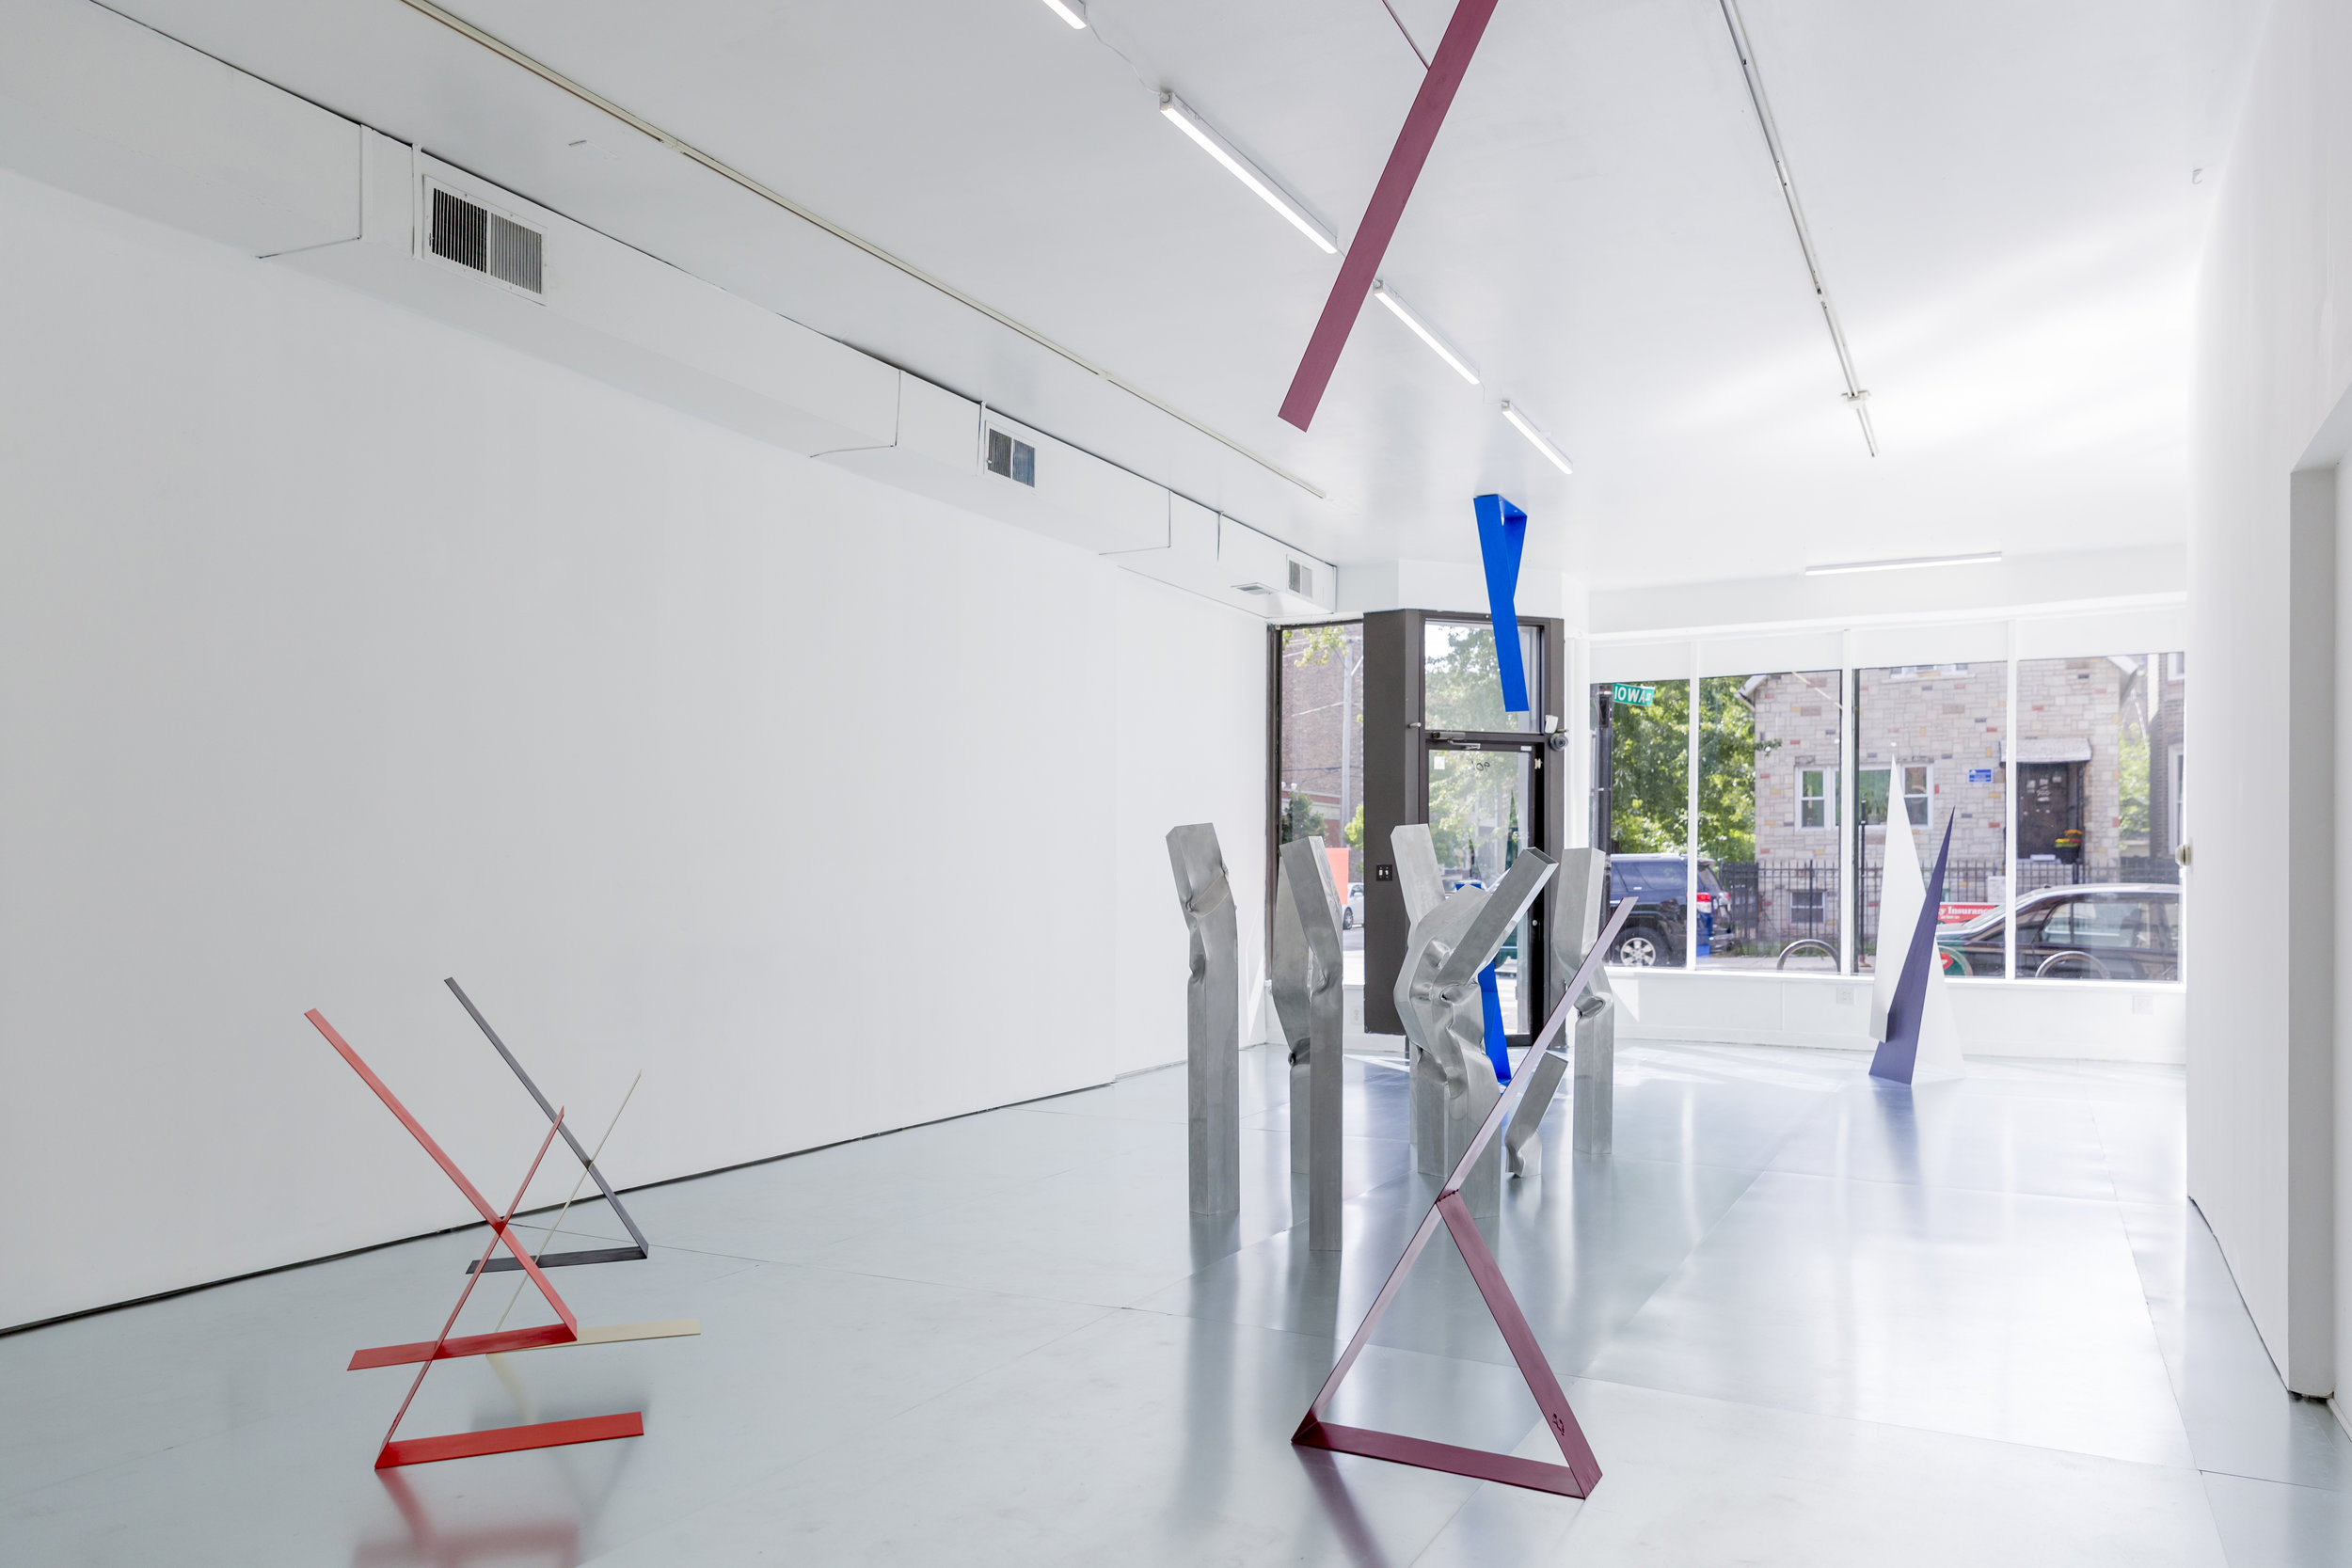 Exhibition View, PROOON, 2016